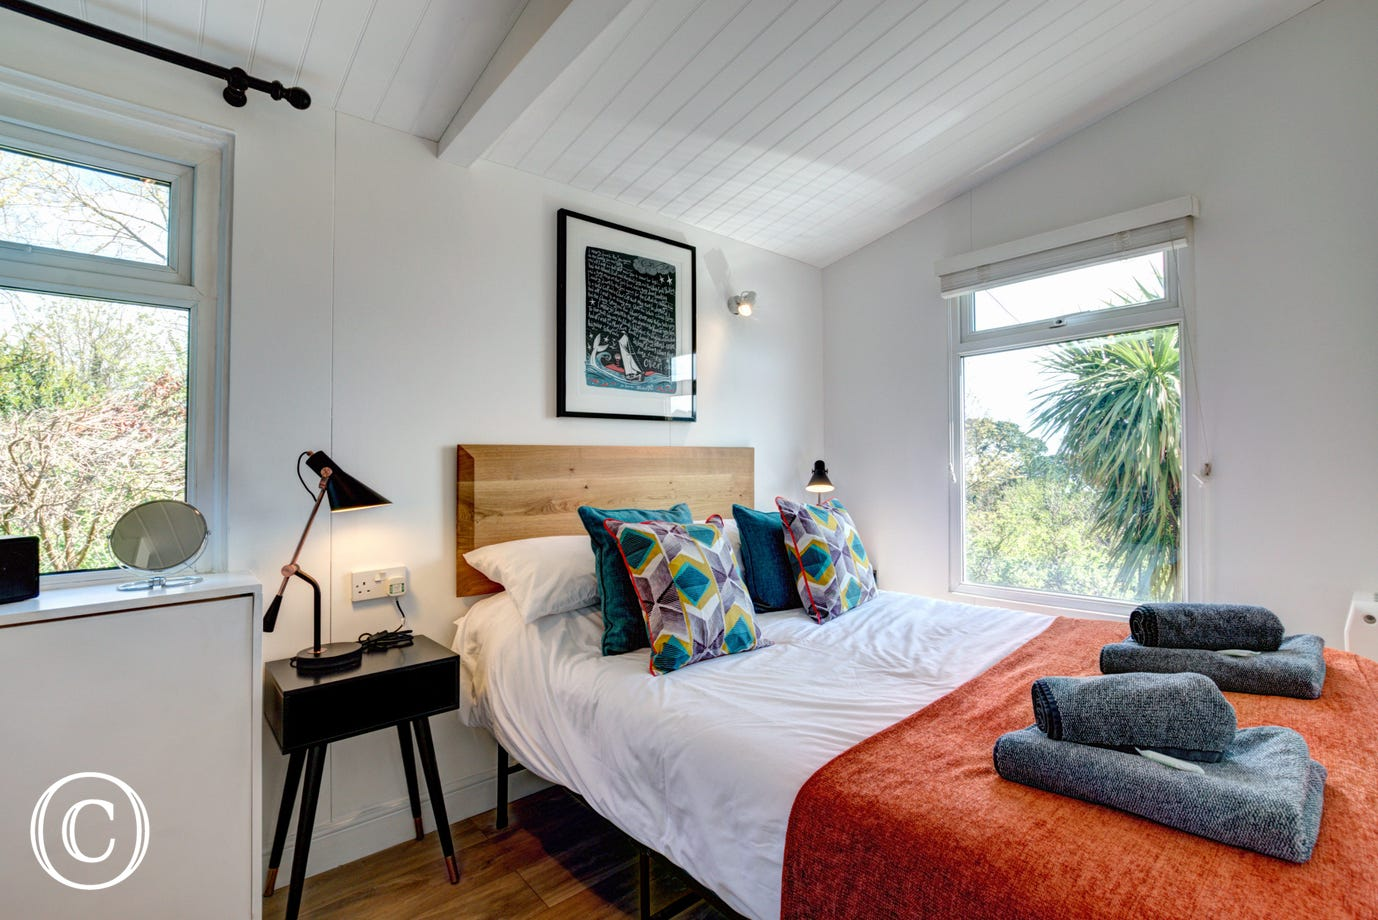 Bedroom: Double bed with views out sea. Stylish and coordinated bedroom, bedside tables and lamps. Separate dressing area with ample storage for clothes, full length mirror. Analogue Radio.